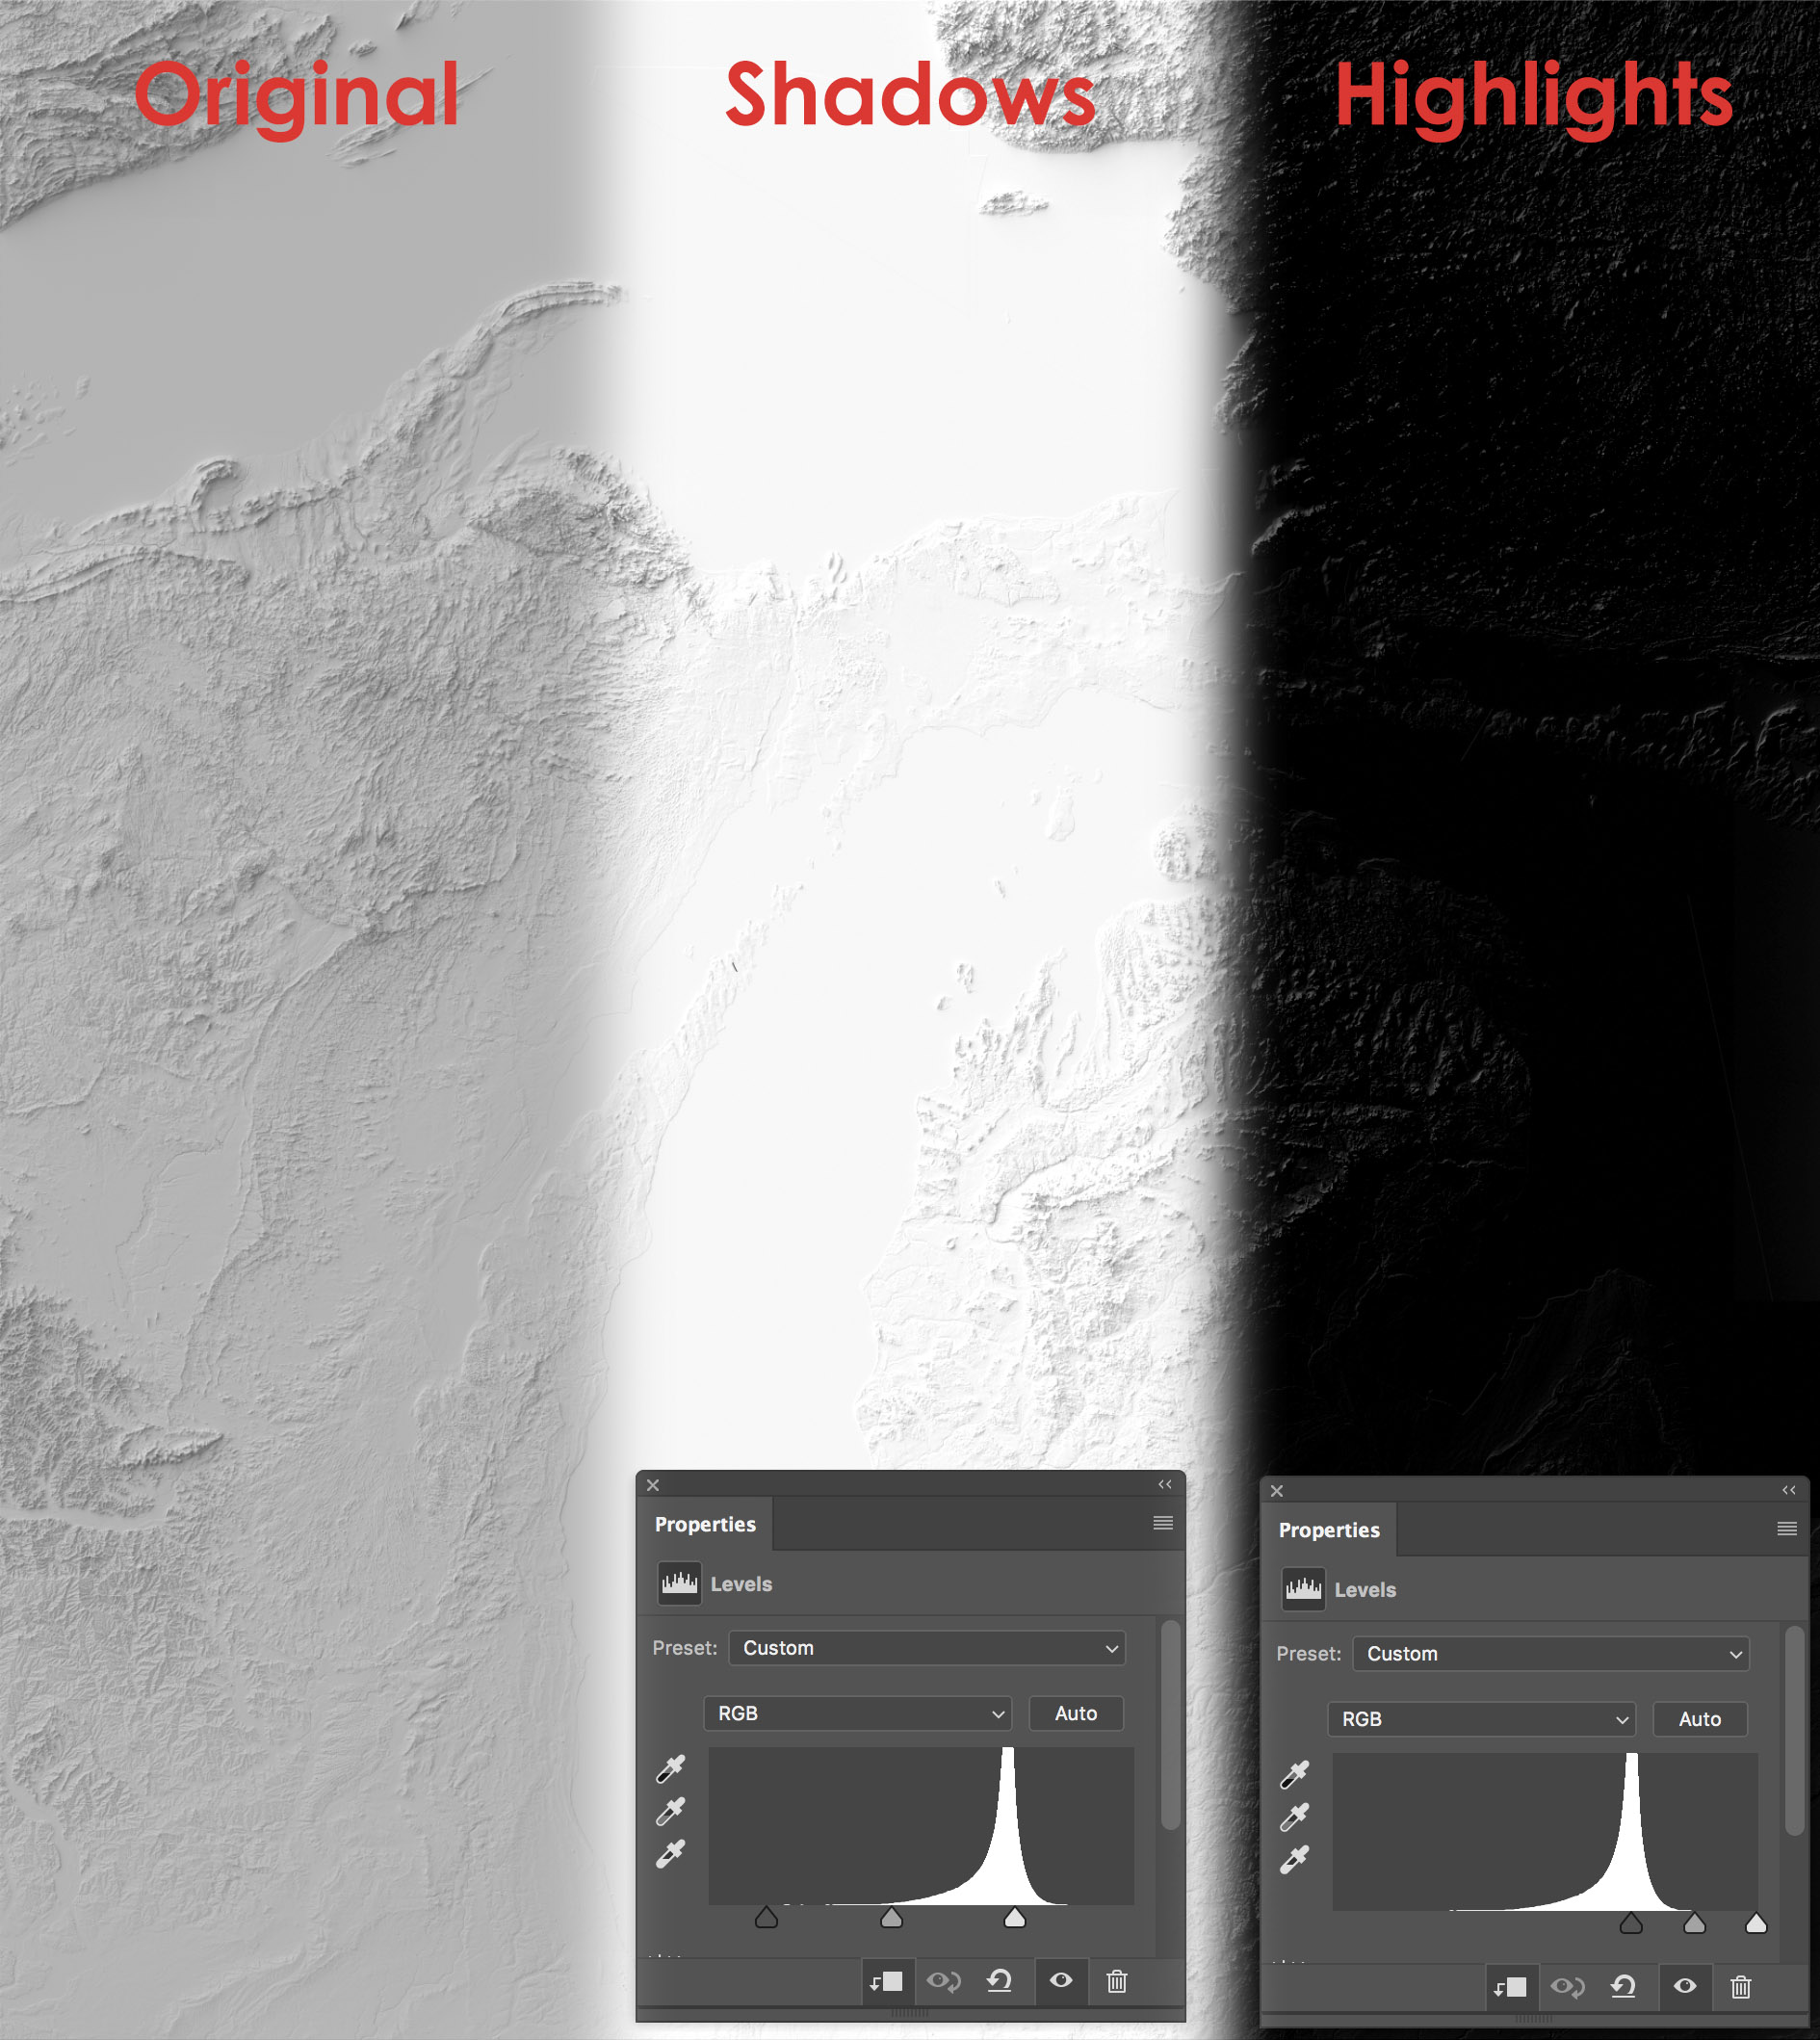 Terrain in Photoshop: Layer by Layer | somethingaboutmaps